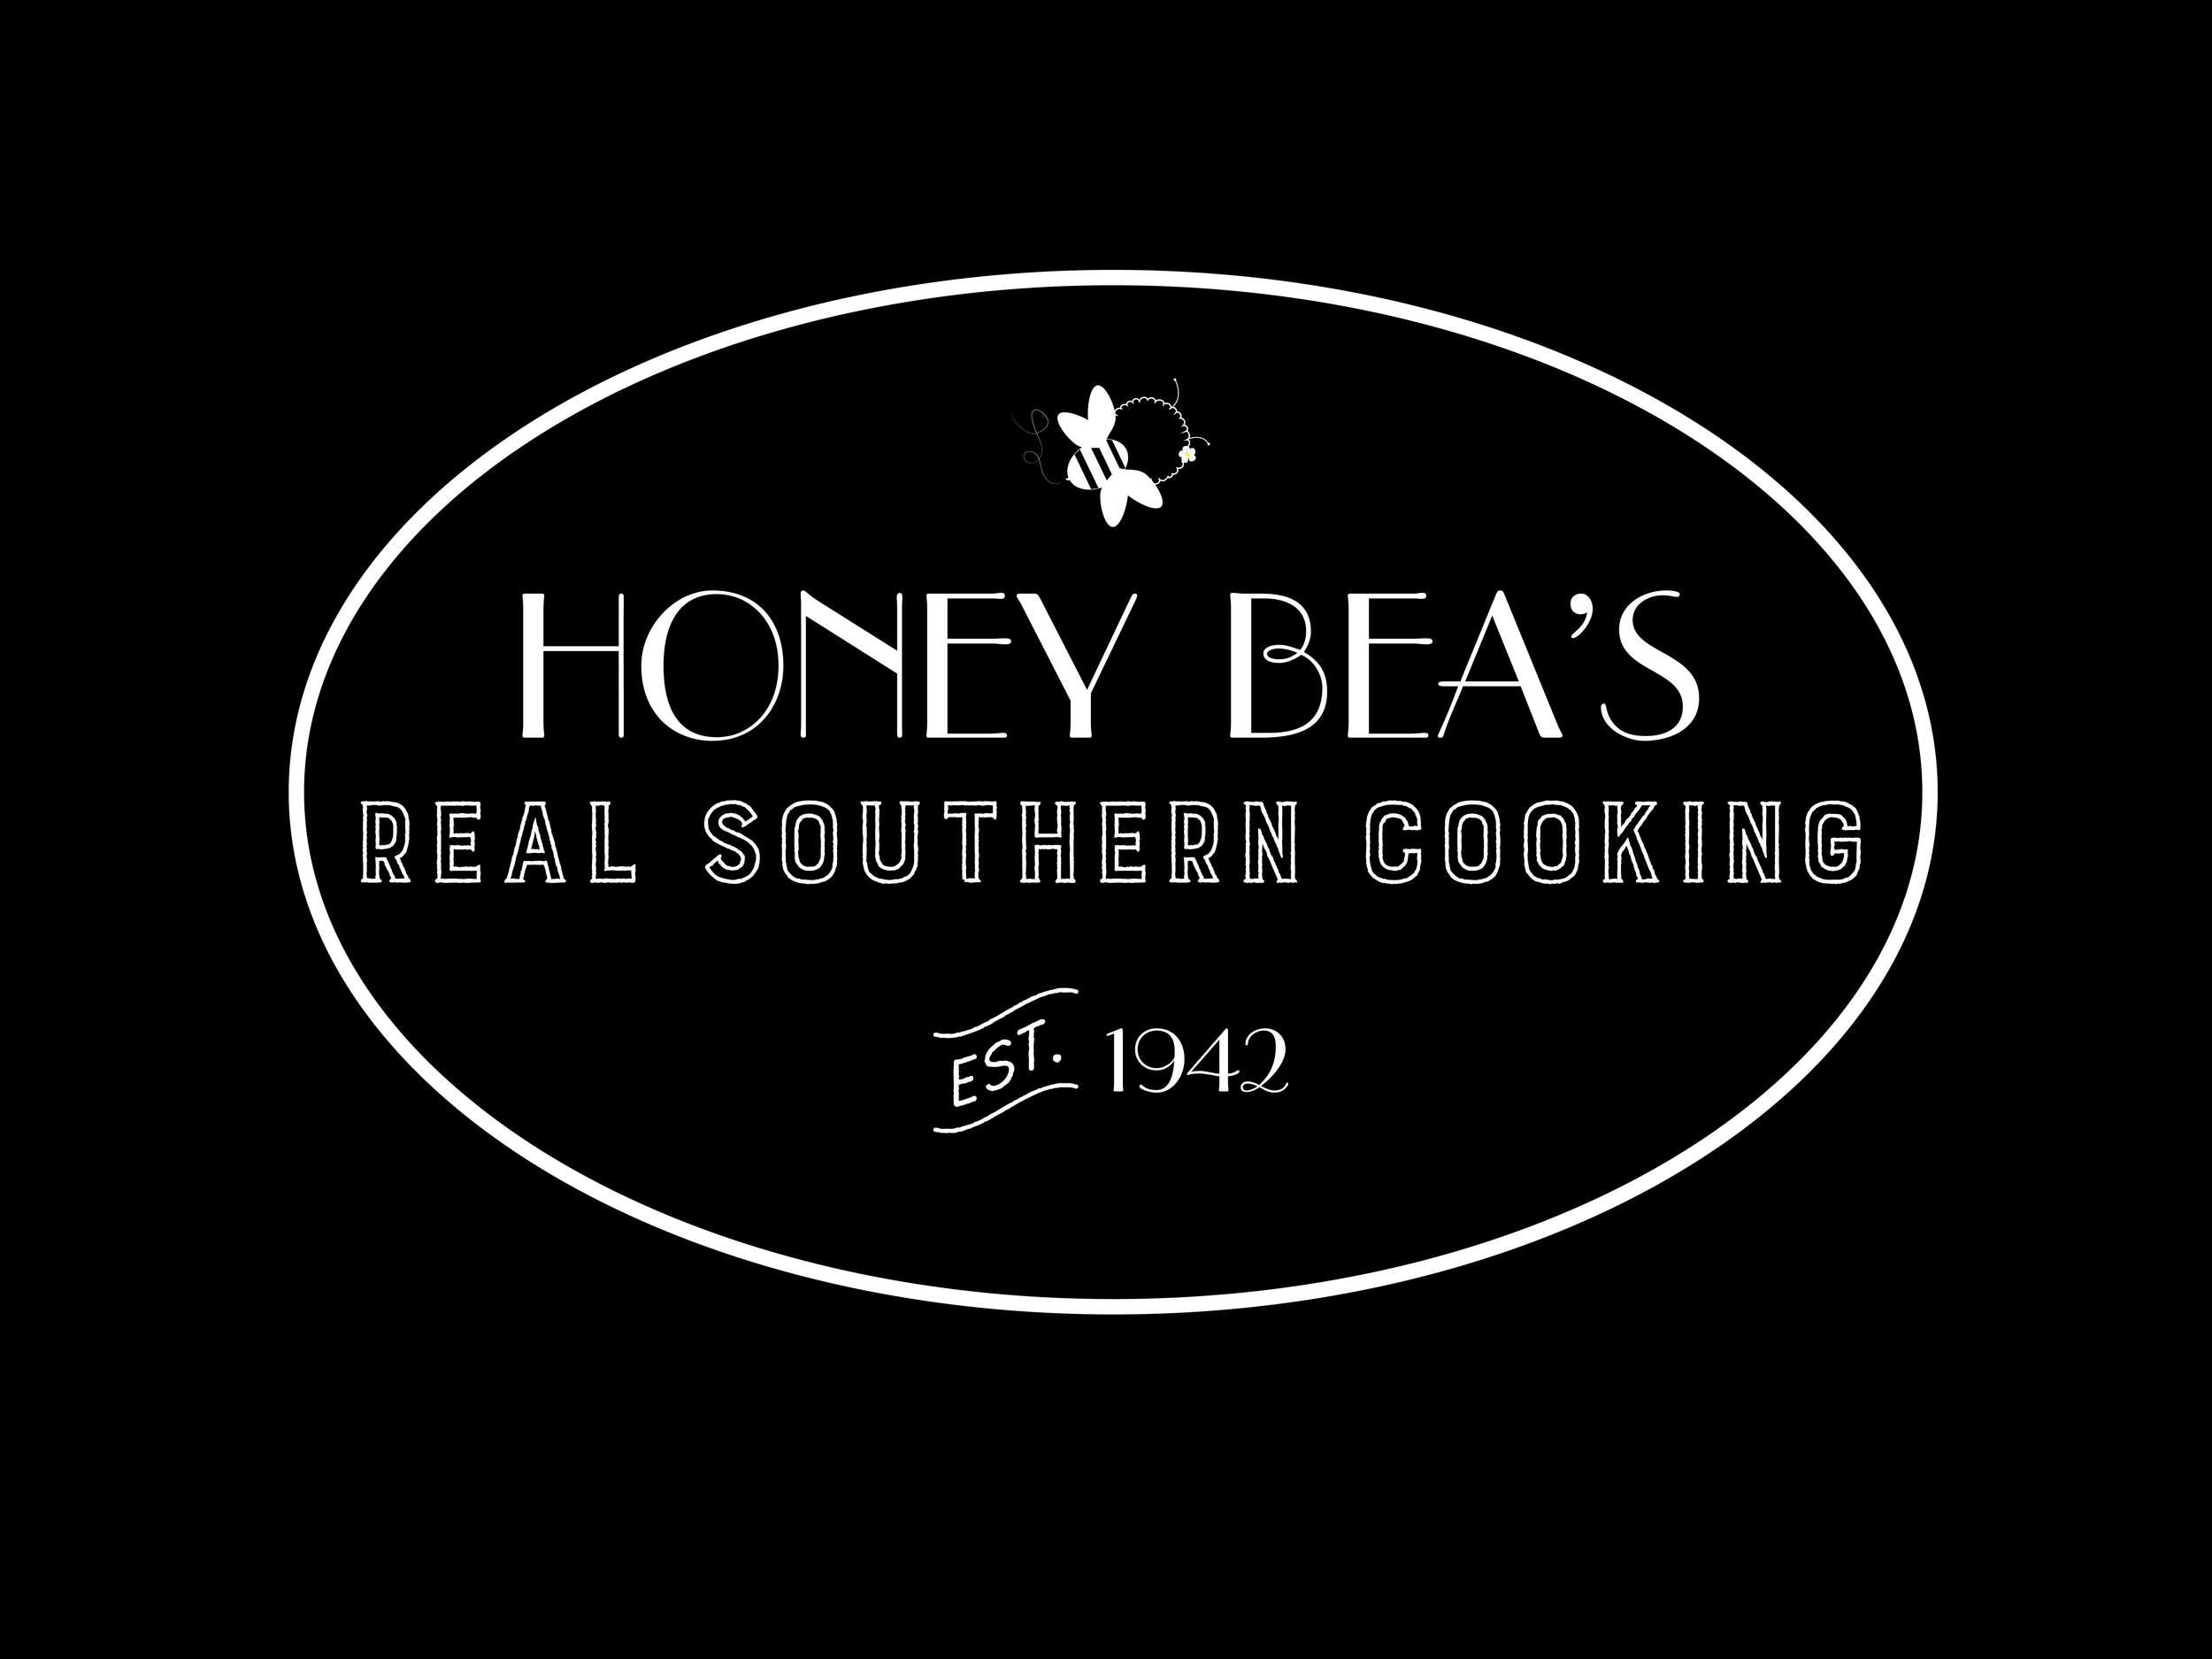 Honey Bea_3-02.jpg